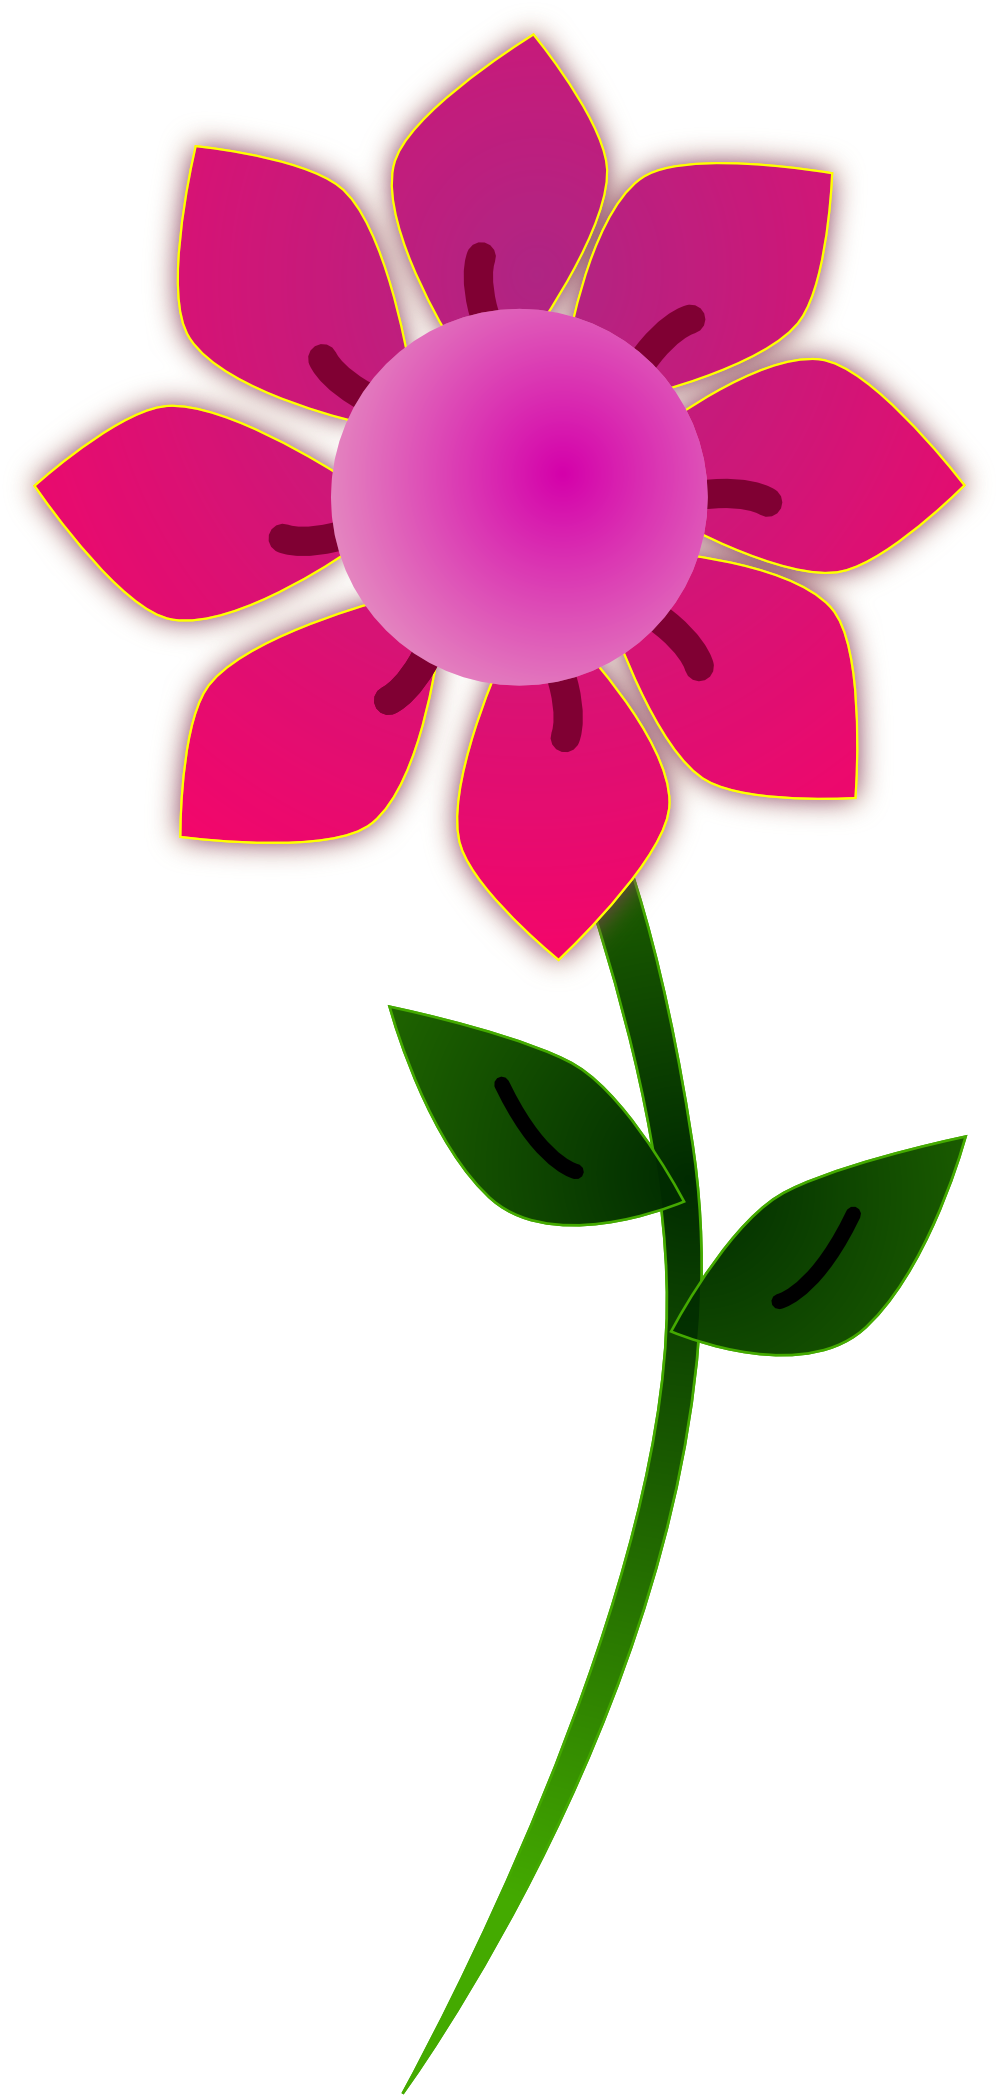 999x2095 Free Flower Clip Art Graphics Of Flowers For Layouts Image 6 2